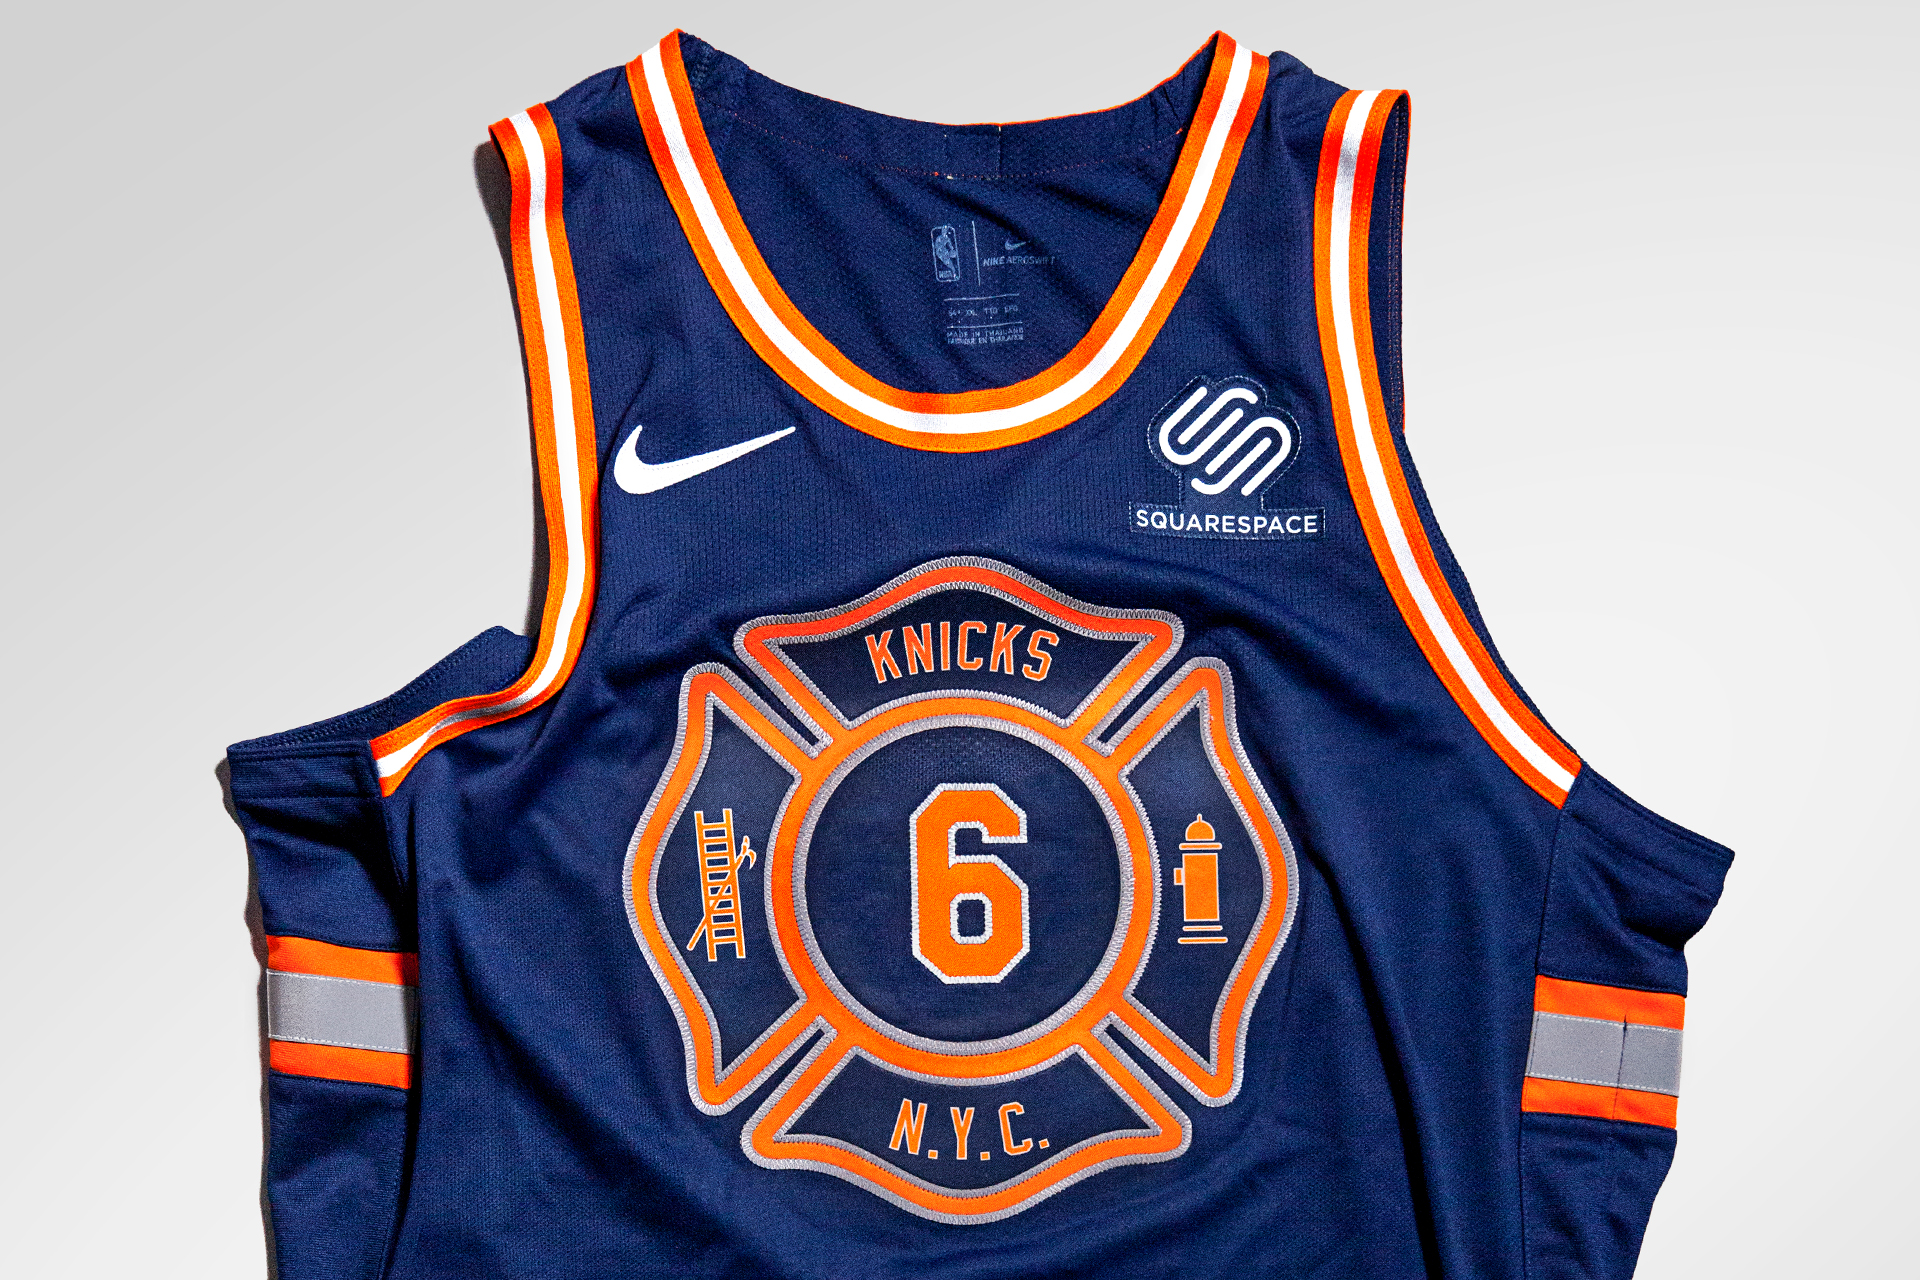 Tarek Awad Knicks X Nike Fdny City Edition Uniform